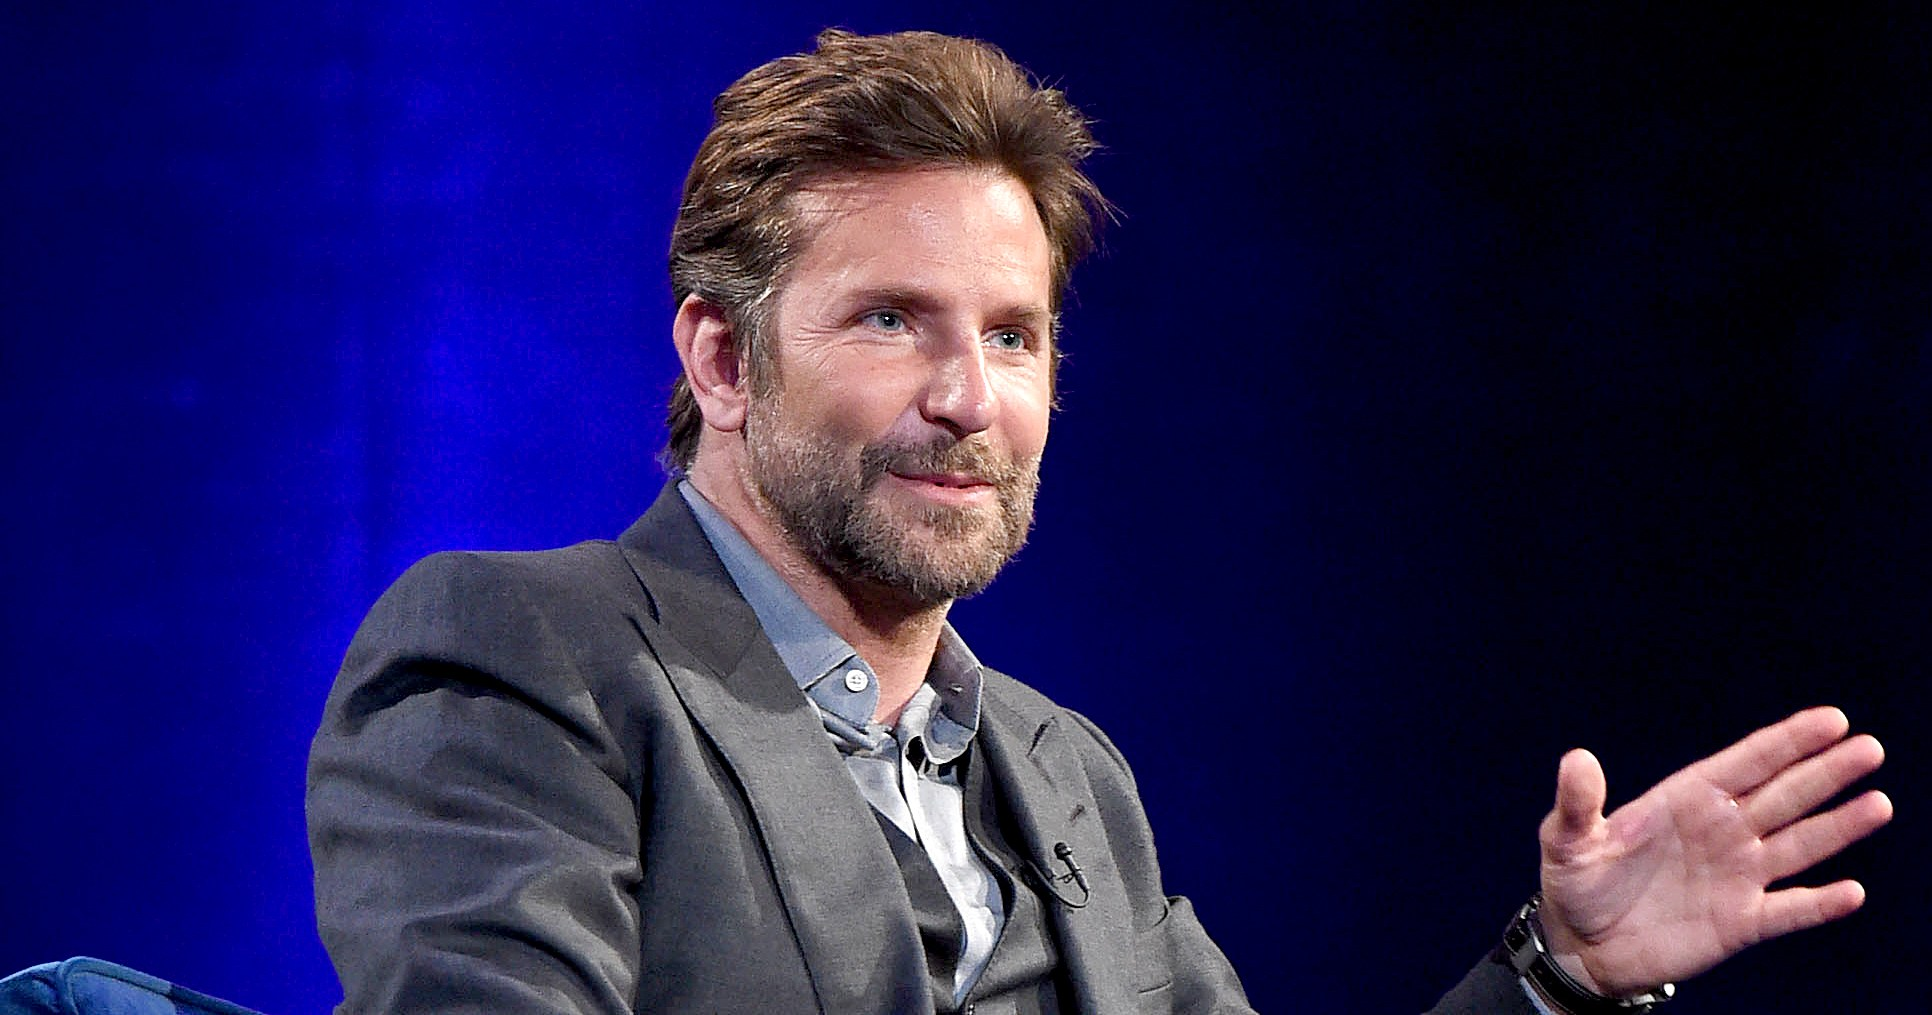 Bradley Cooper Admits He 'Felt Embarrassed' About Not Being Nominated for Best Director Oscar